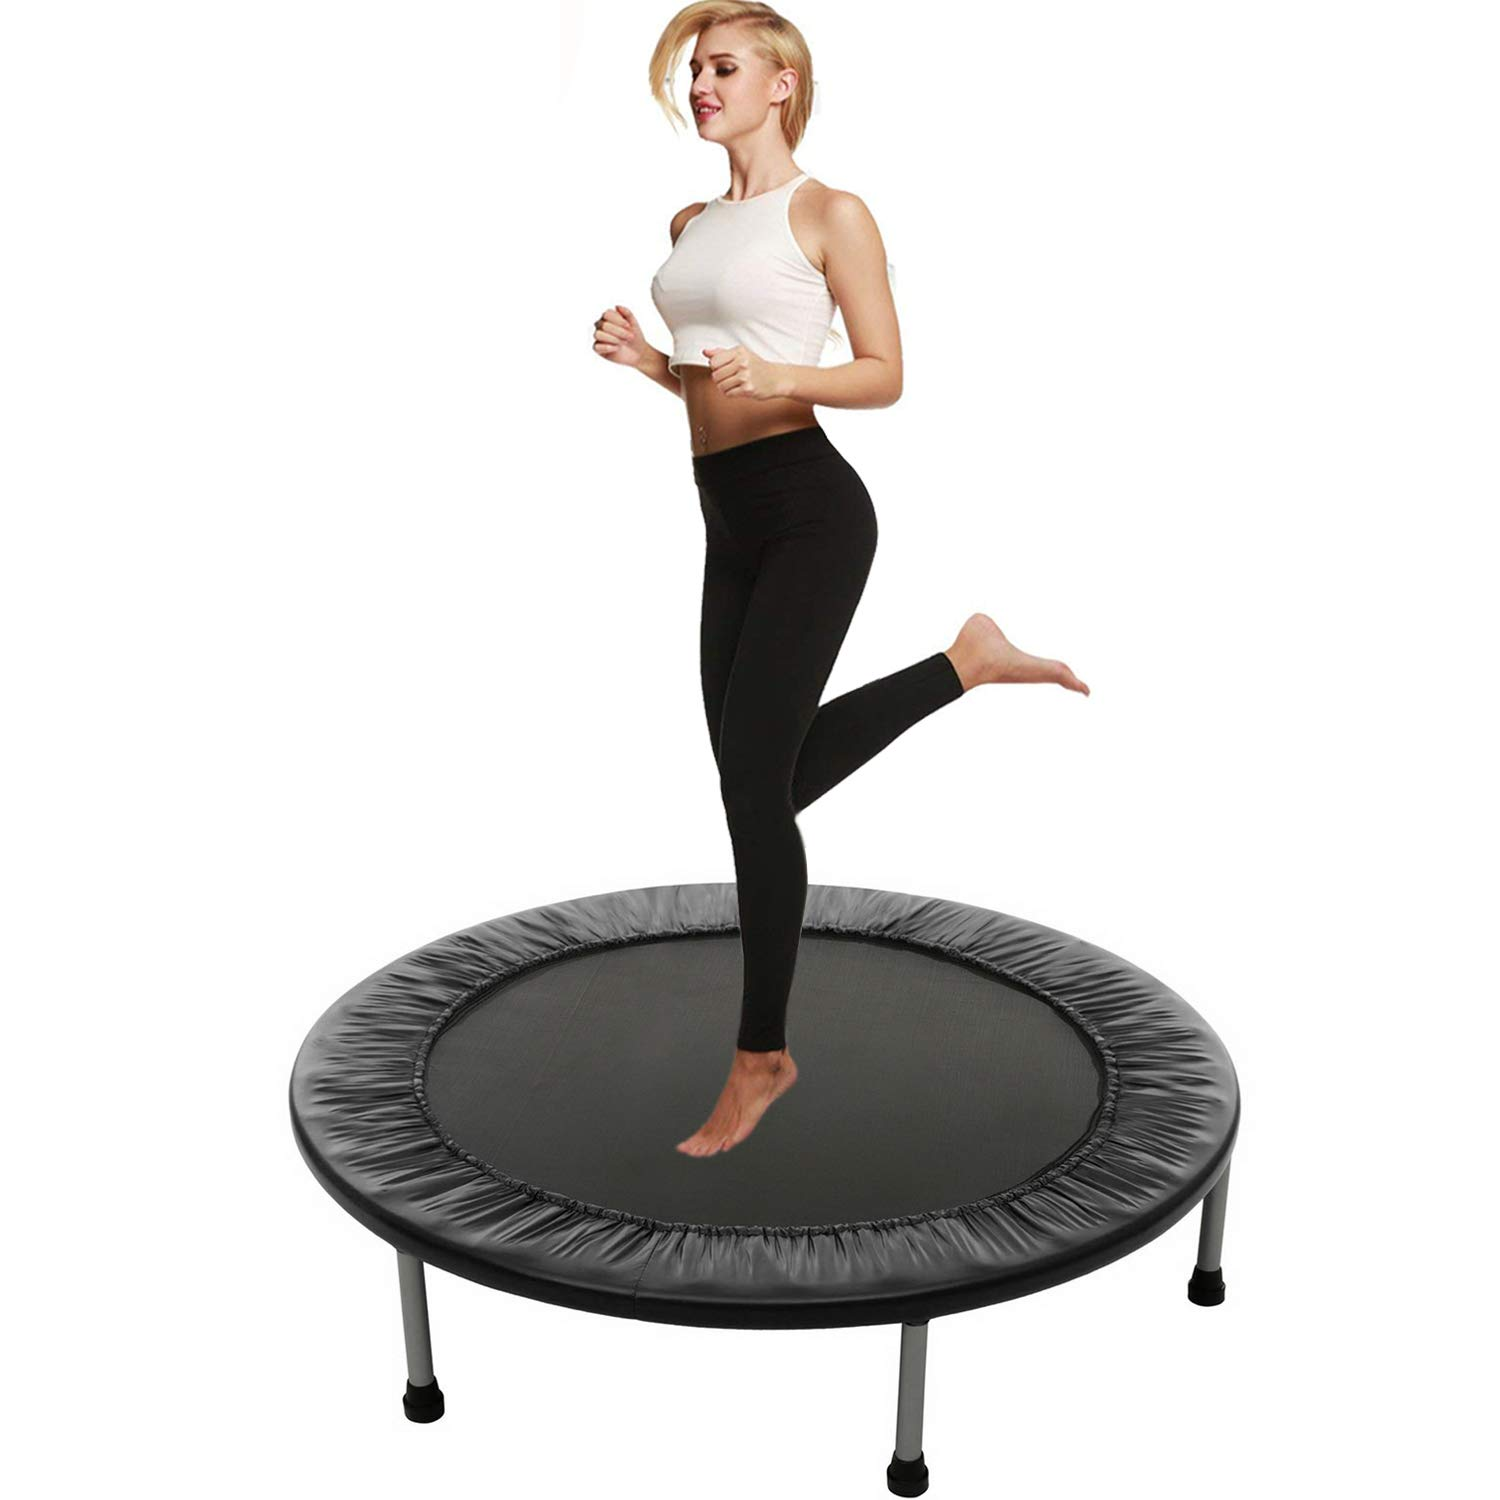 Balanu 40 Inch Mini Exercise Trampoline for Adults or Kids - Indoor Fitness Rebounder Trampoline with Safety Pad | Max. Load 220LBS (Black-40In-Foldable Once) by Balanu